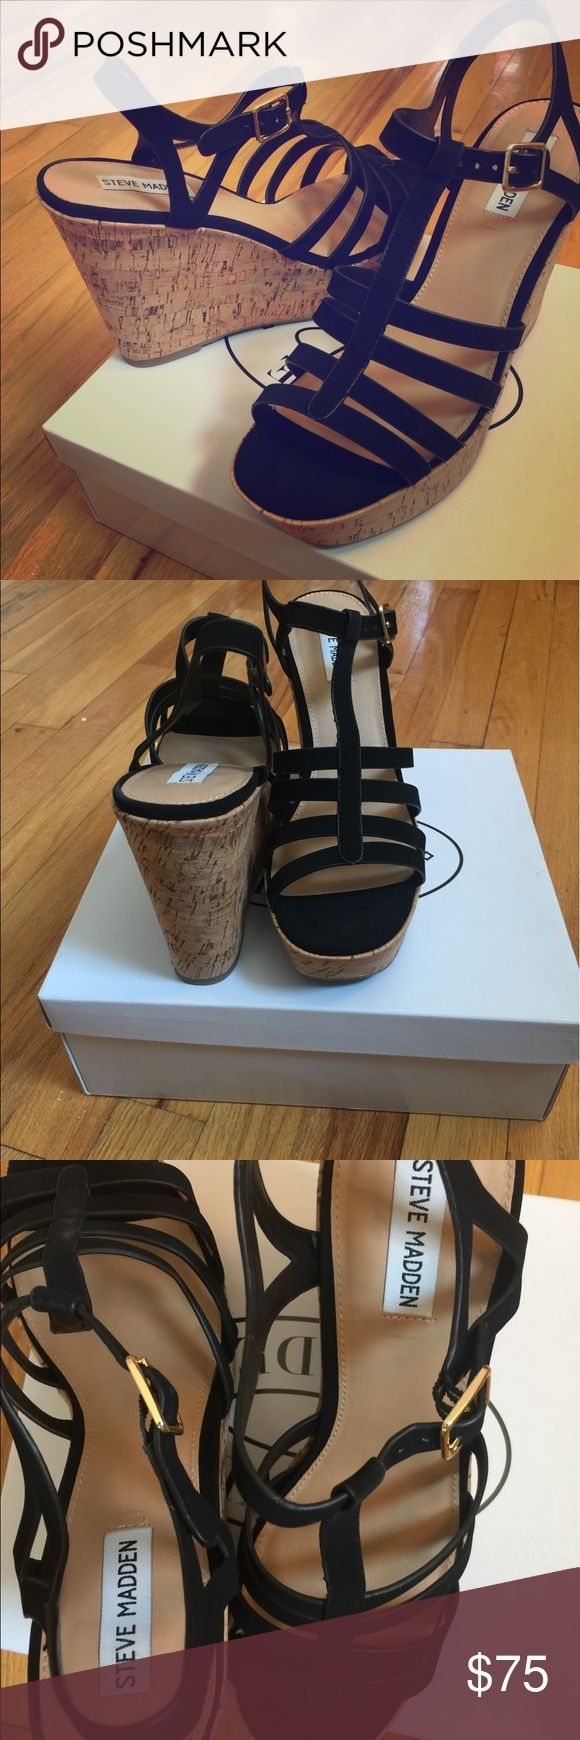 """Steve Madden Nalla Wedge Sandal Black Steve Madden's Nalla sandals step up your style from day to night with a strappy design and faux cork platform wedge heel. Round open toe T-strap slingback platform wedge sandal. Adjustable buckle closure at ankle strap. 4-1/2"""" Wedge heel, 1-1/4"""" platform, feels like 3-1/4"""" heel. Nubuck leather upper, manmade sole. PRICE IS FIRM. In excellent condition. Worn only once. Smoke free home 🚭 Steve Madden Shoes Sandals"""